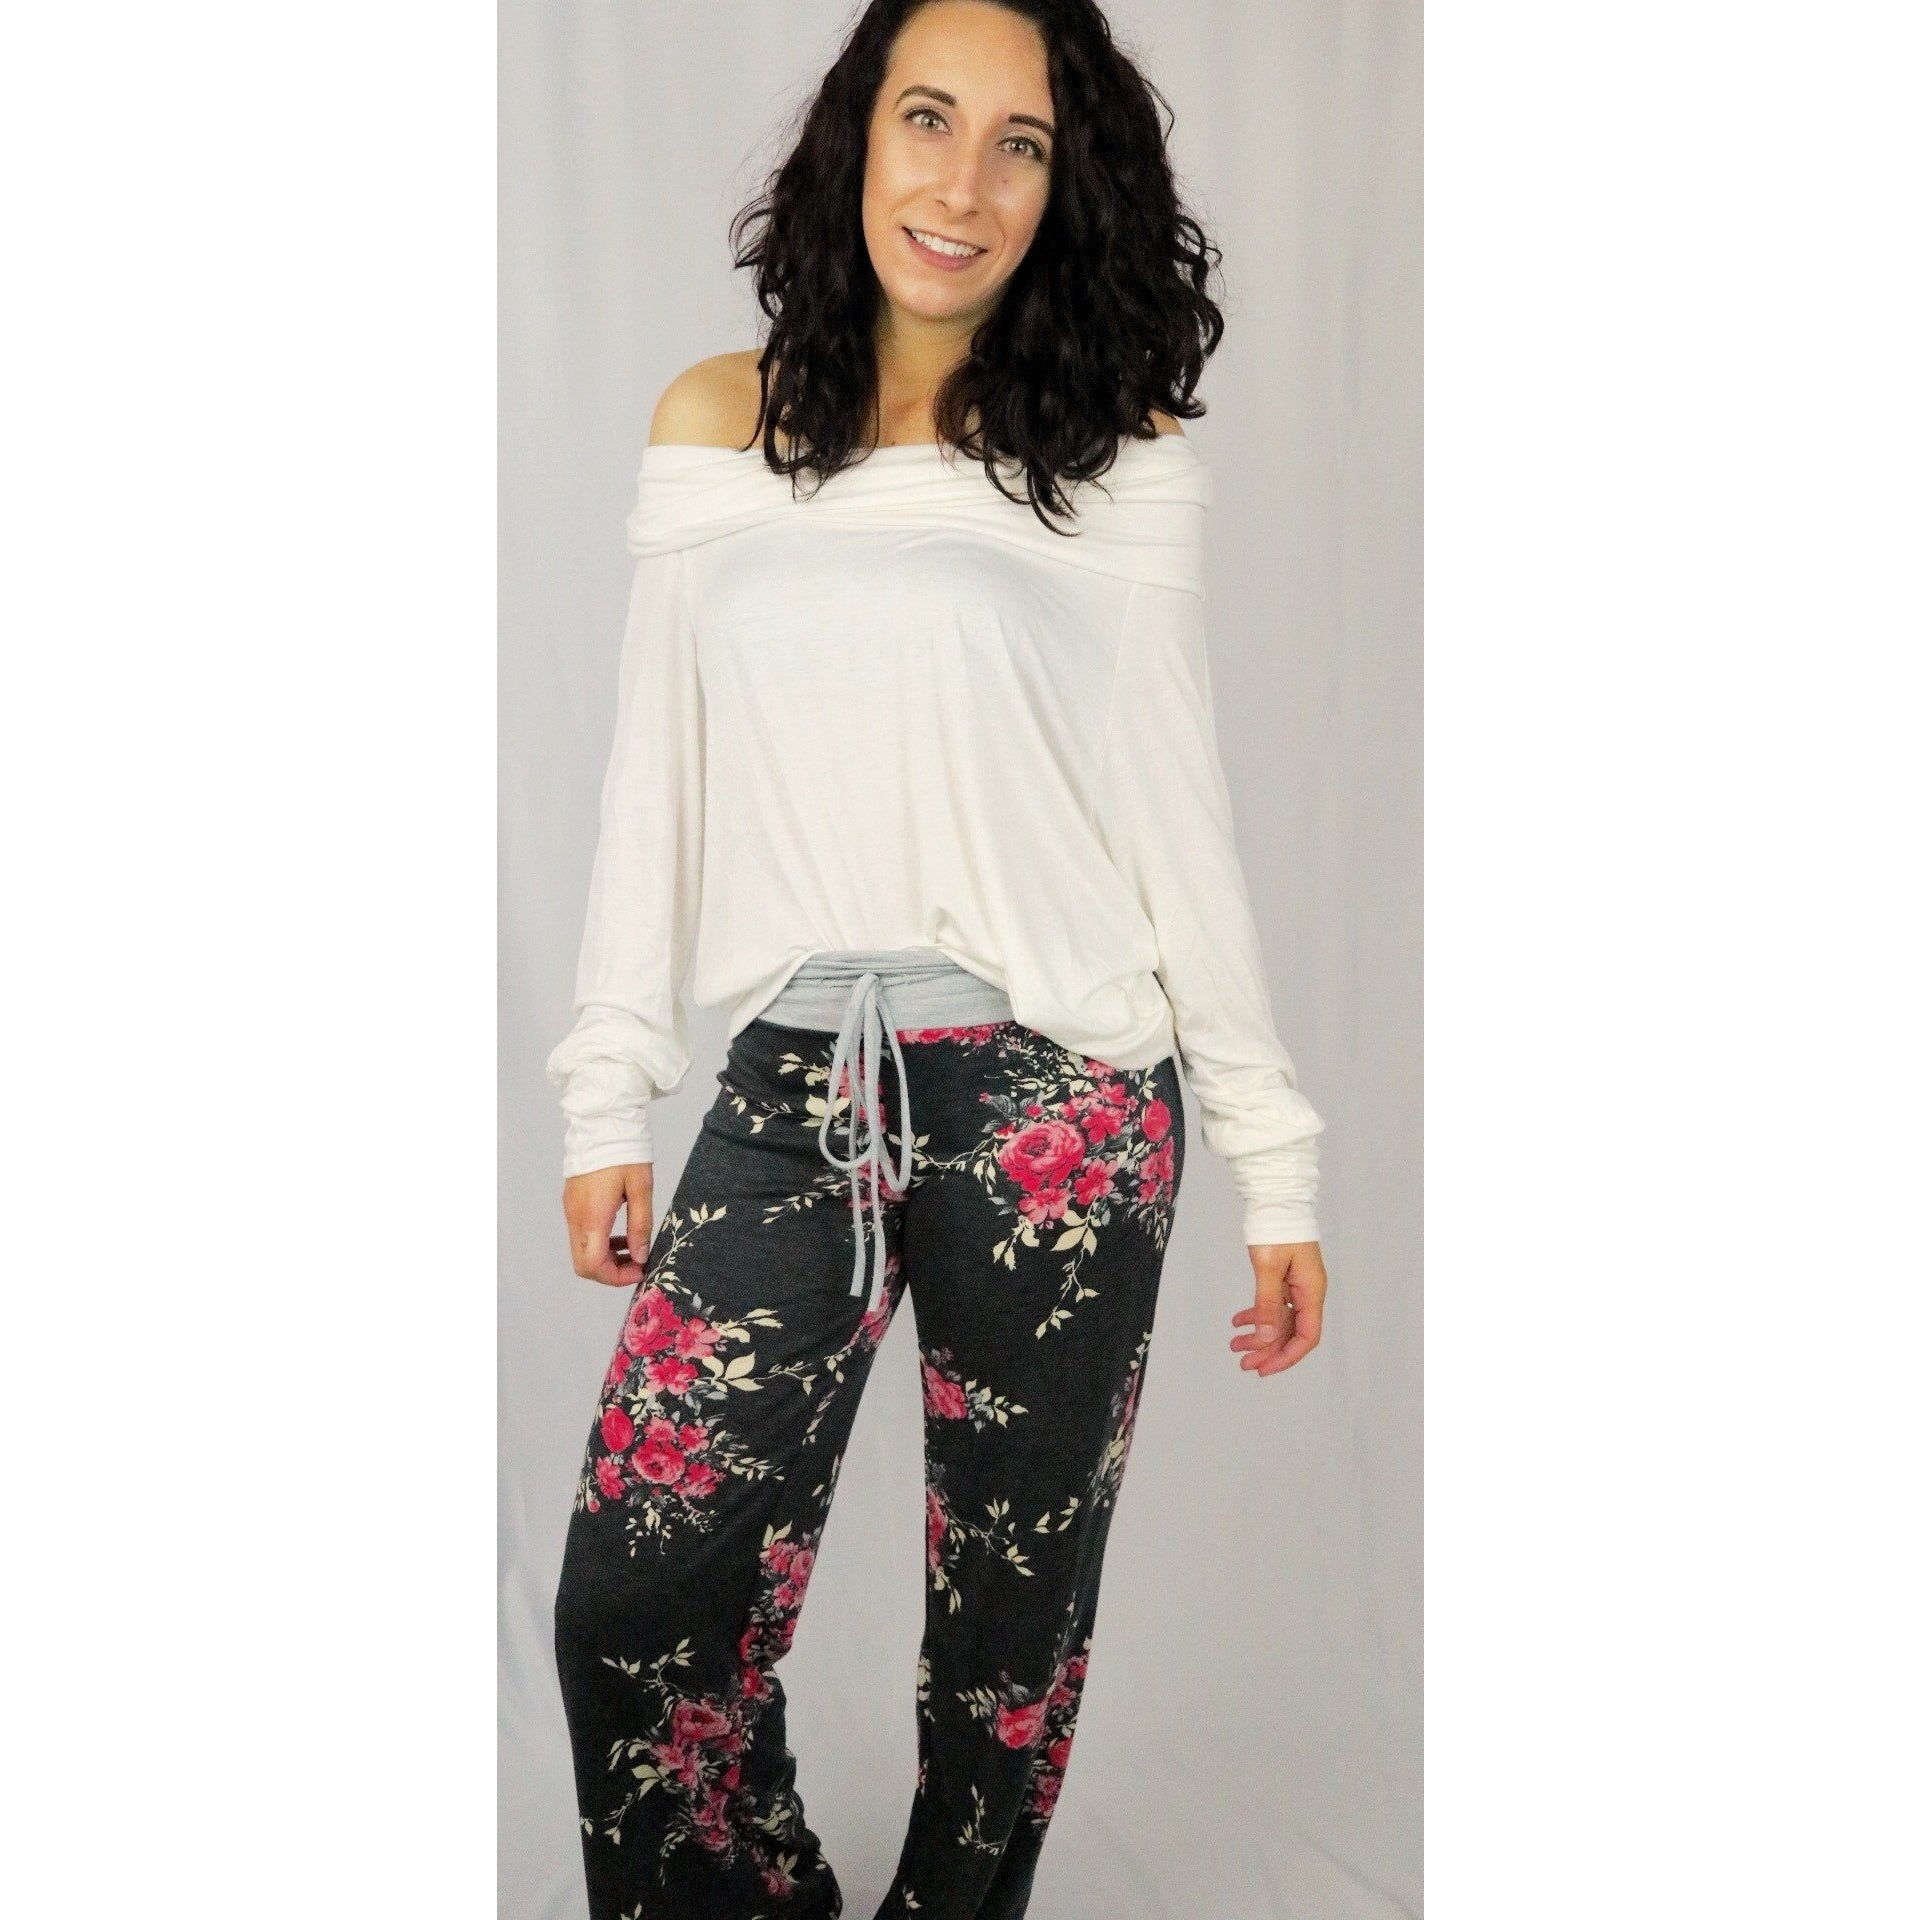 Floral Print Casual Lounge Pants